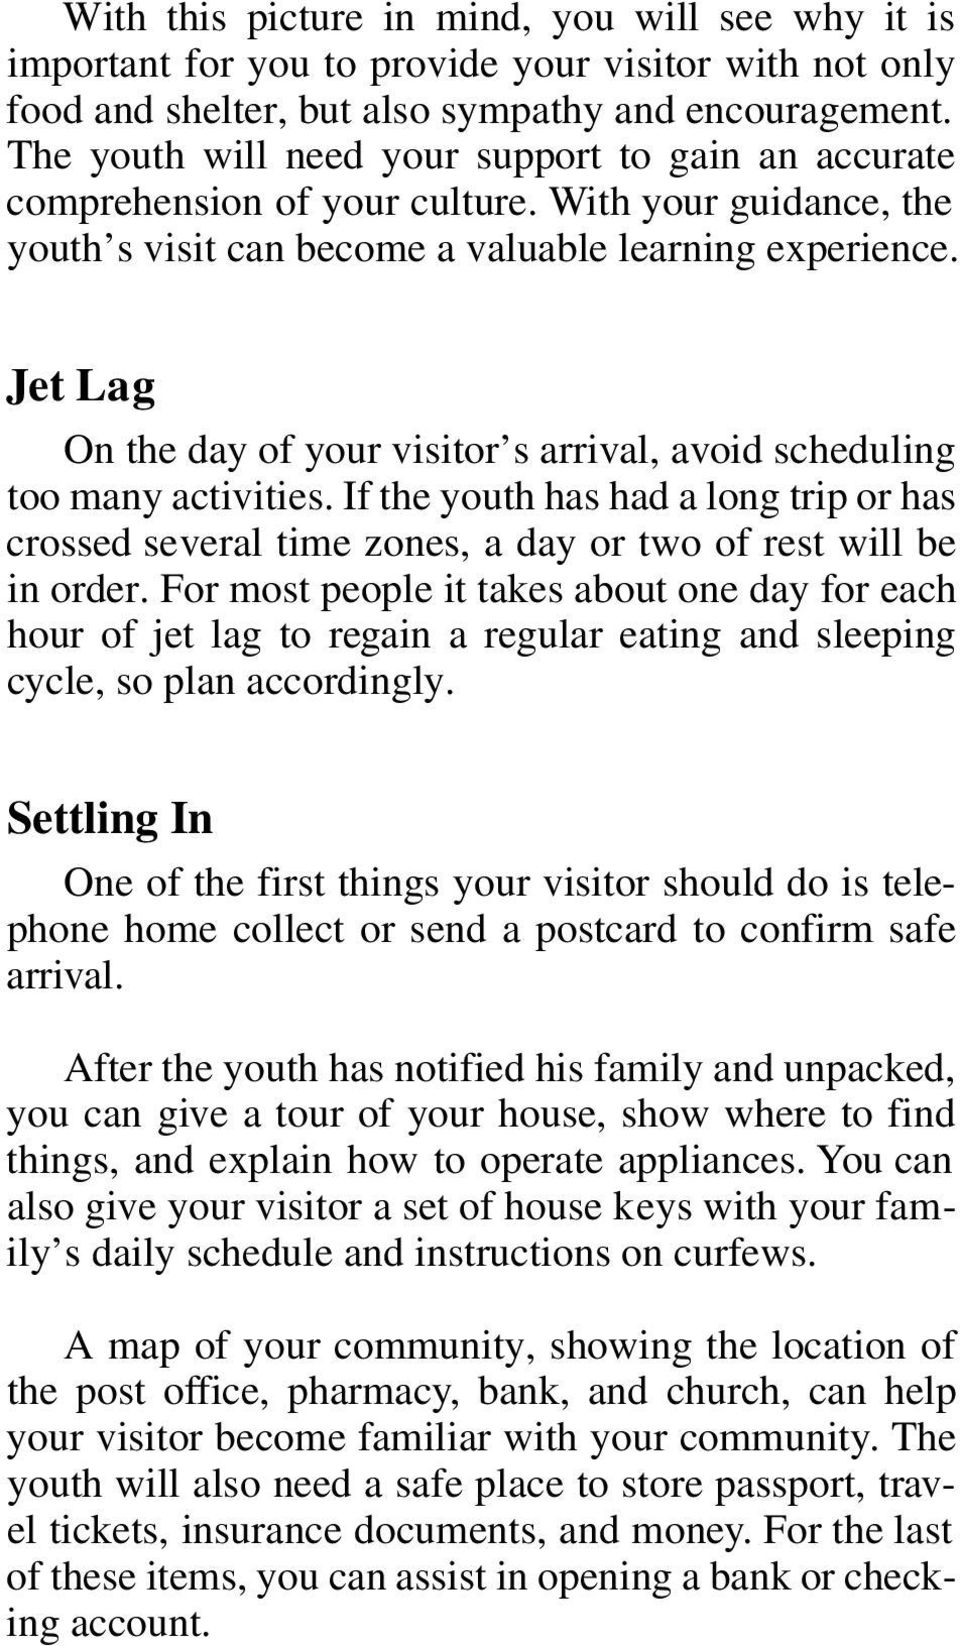 Jet Lag On the day of your visitor s arrival, avoid scheduling too many activities. If the youth has had a long trip or has crossed several time zones, a day or two of rest will be in order.